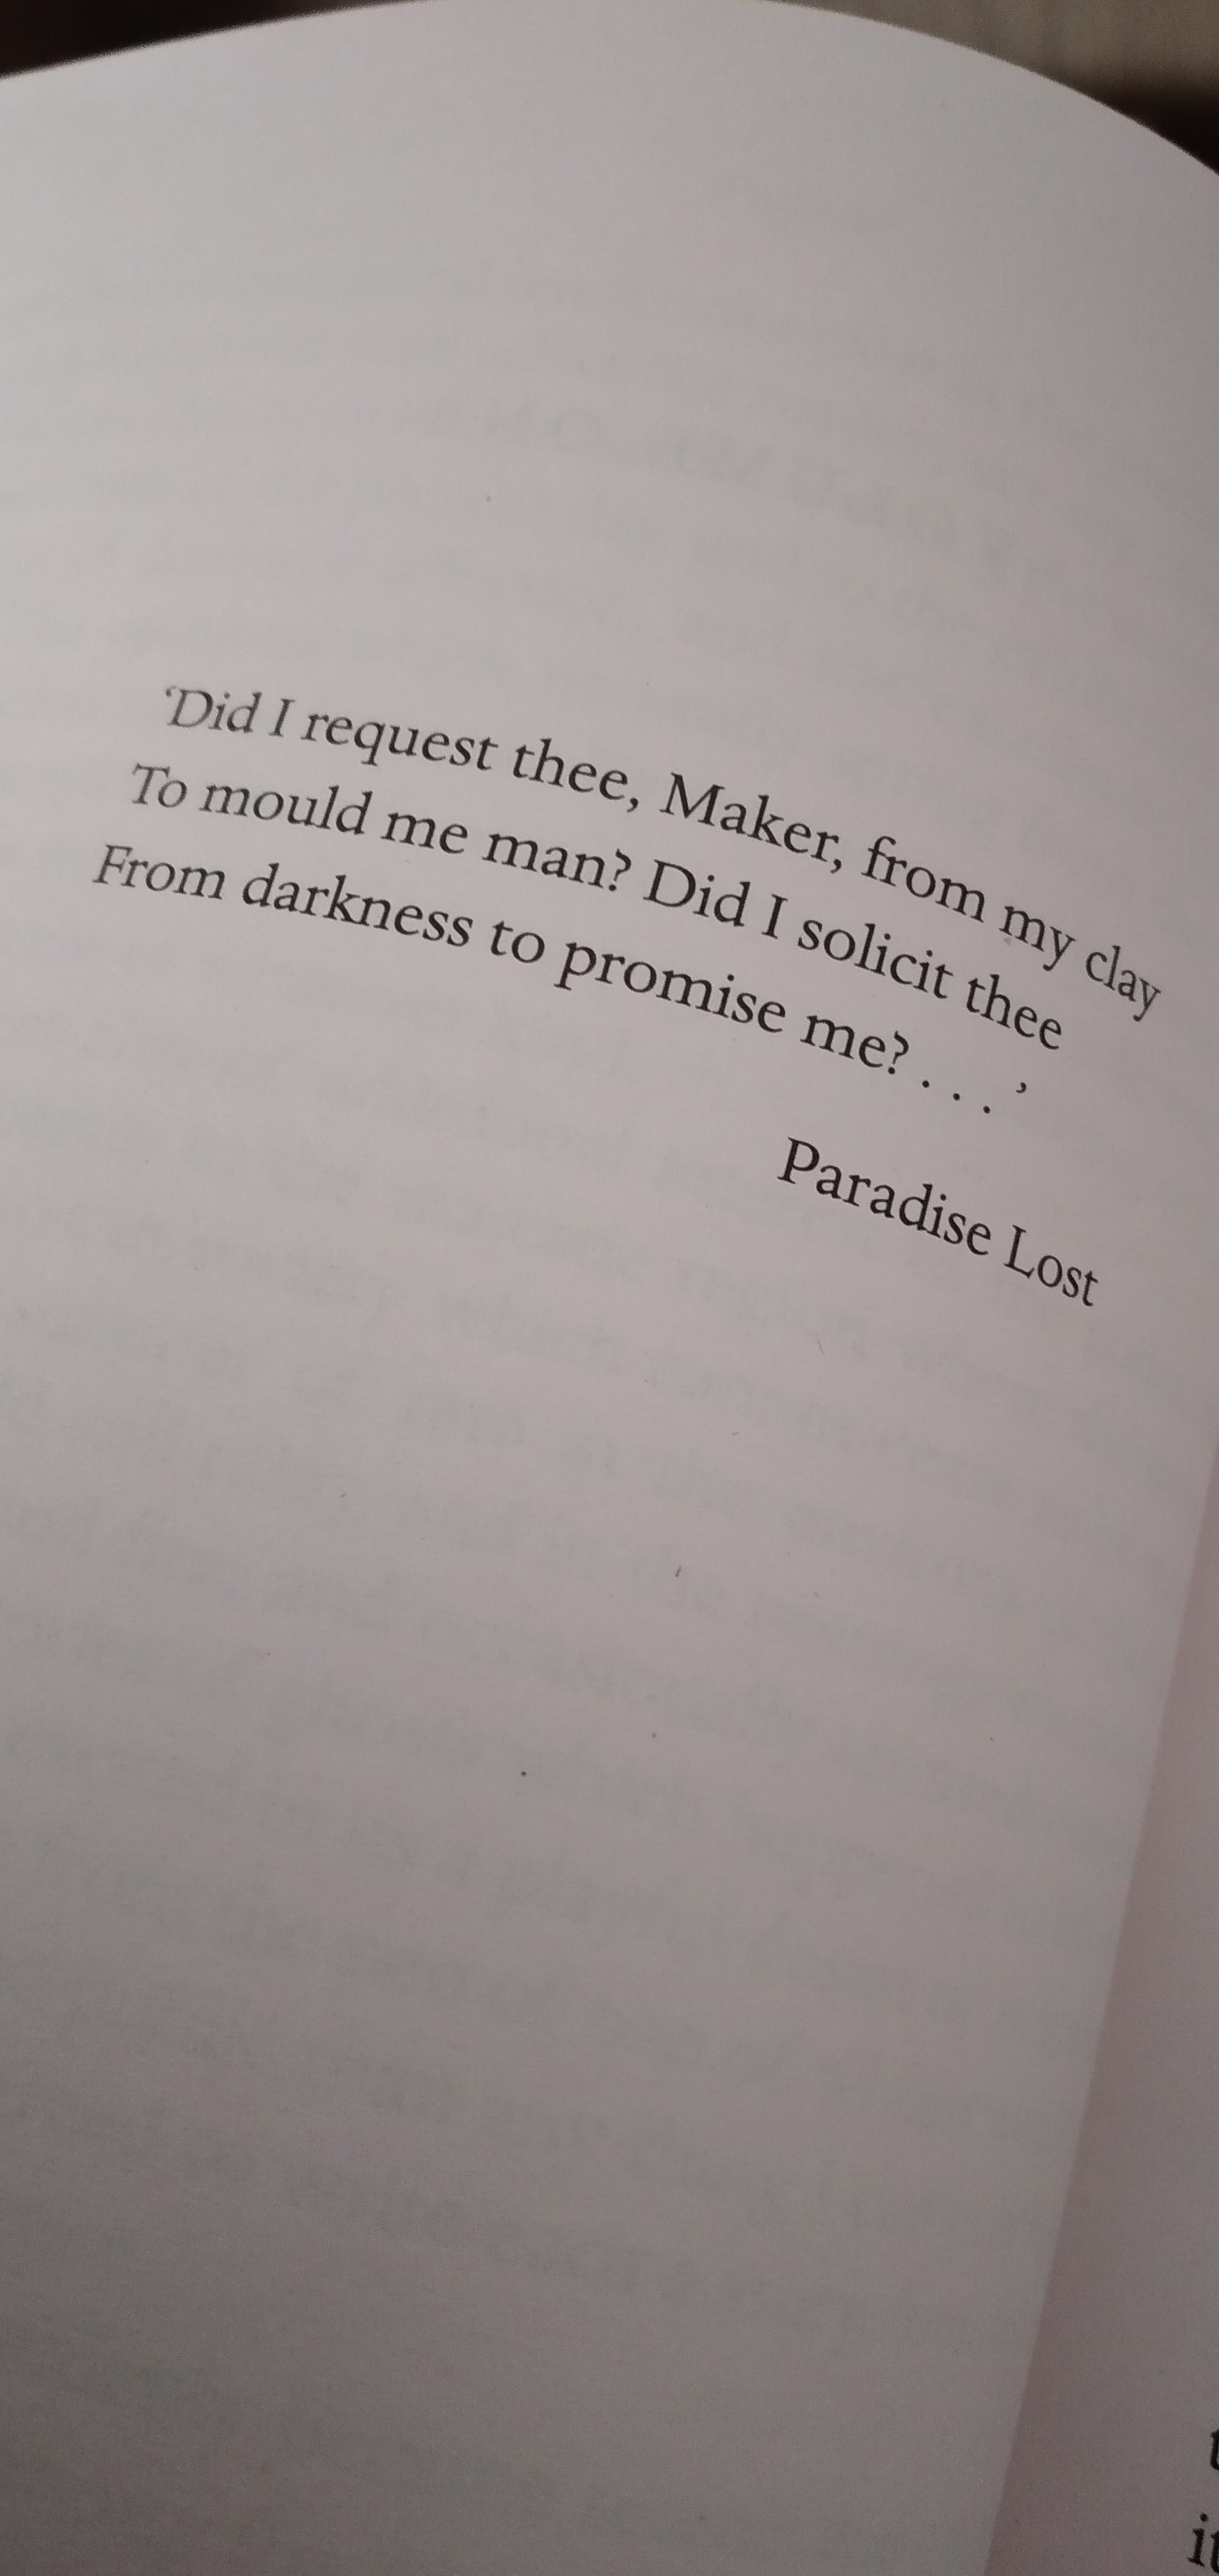 Mary Shelley Frankenstein John Milton Paradise Lost quote